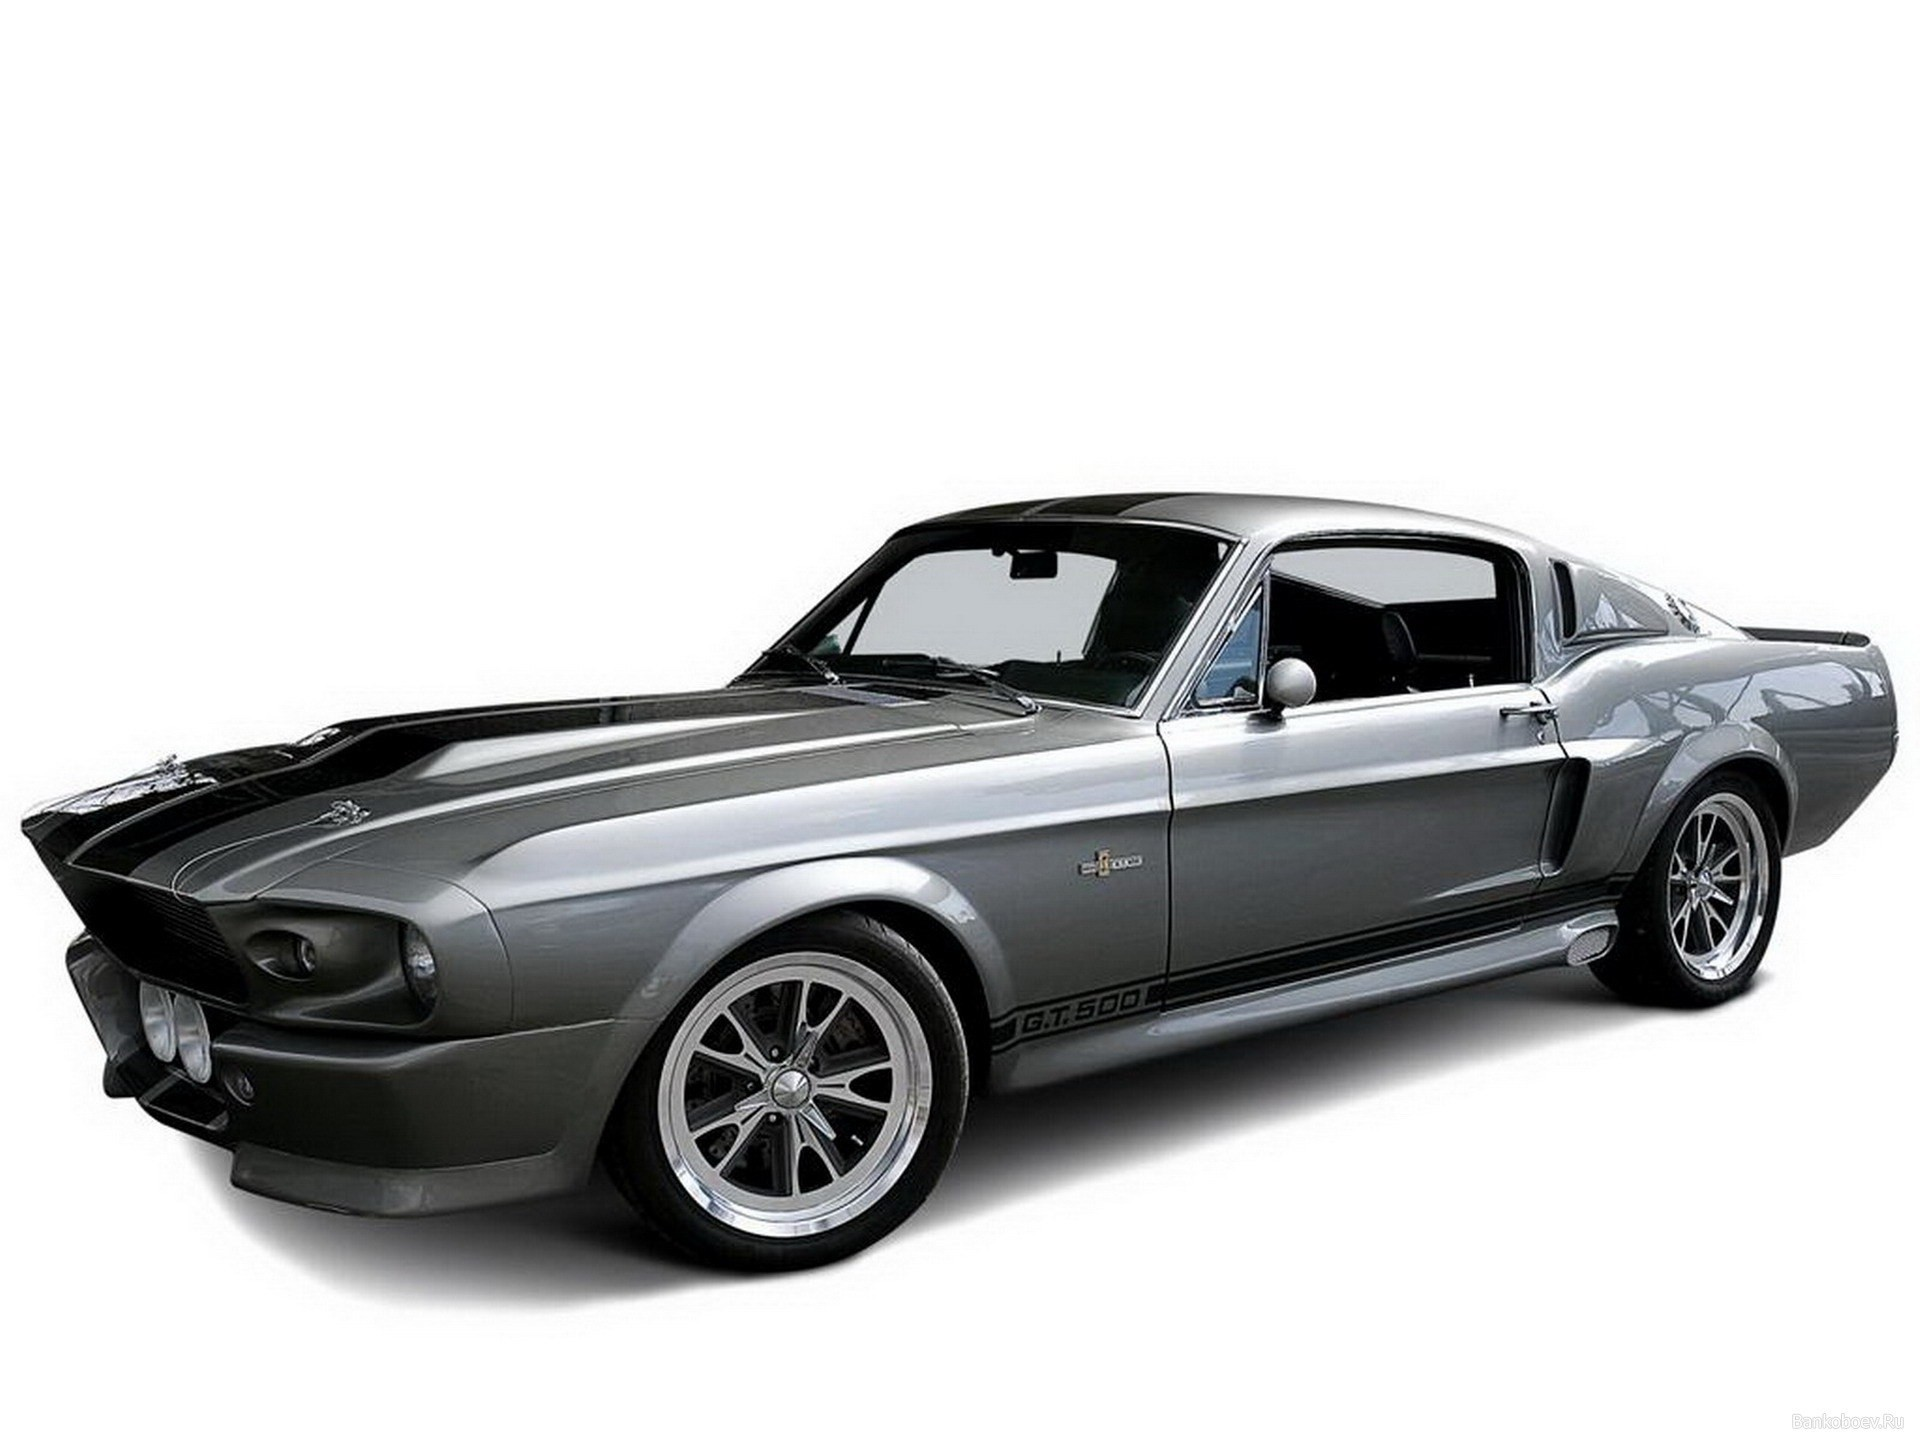 1967 Shelby Gt500 Wallpaper Black Ford Mustang